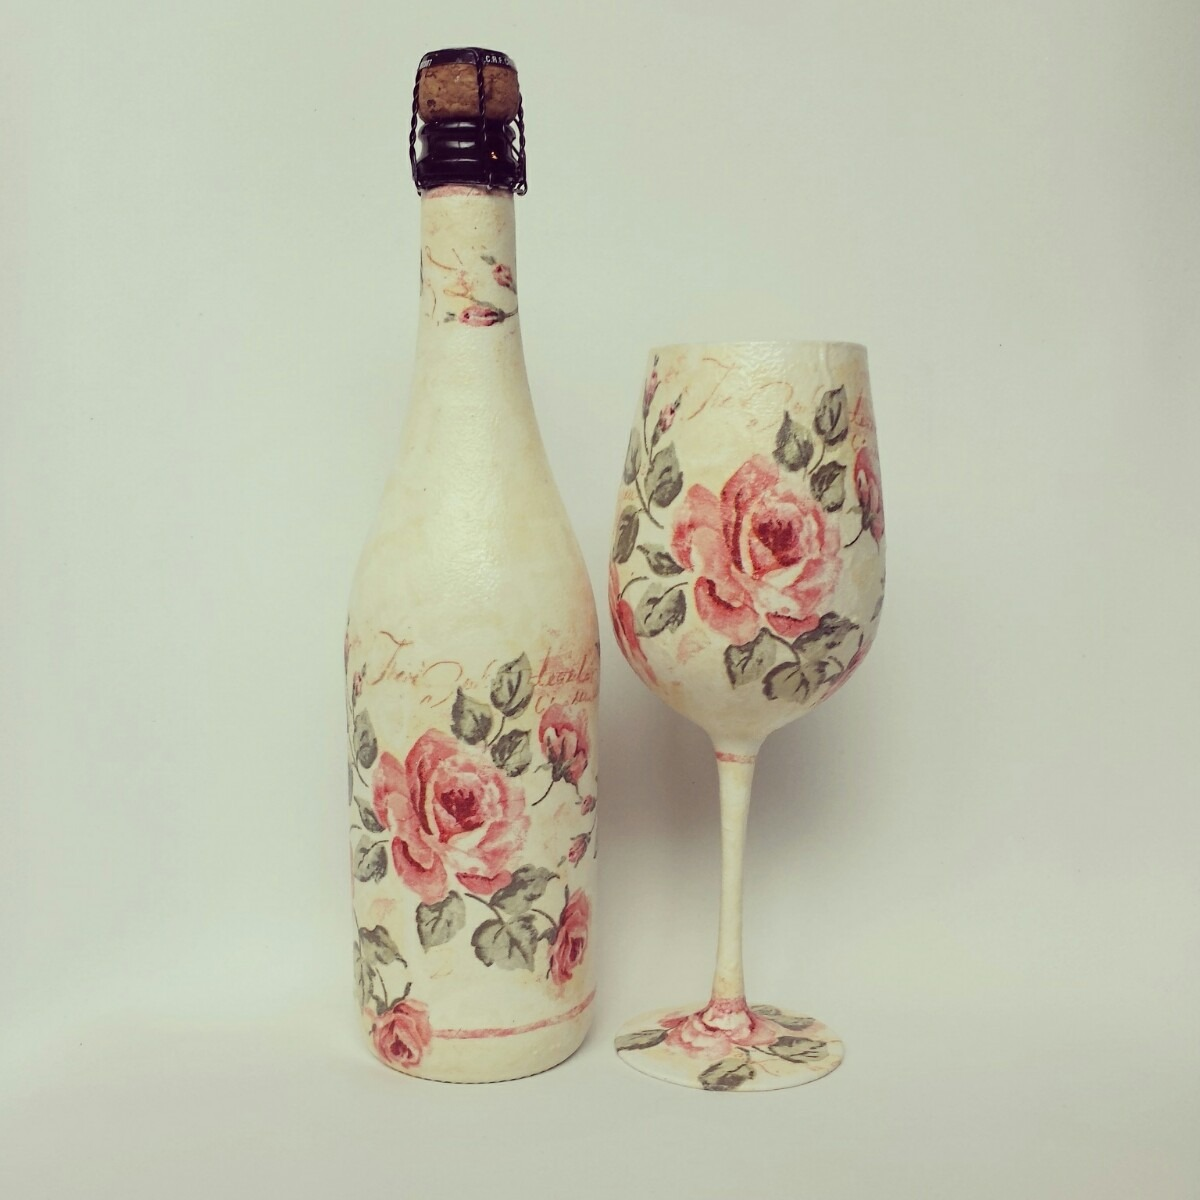 Botellas Decoradas Para 15 De Botellas De Vino Decoracion Para Quince Anos